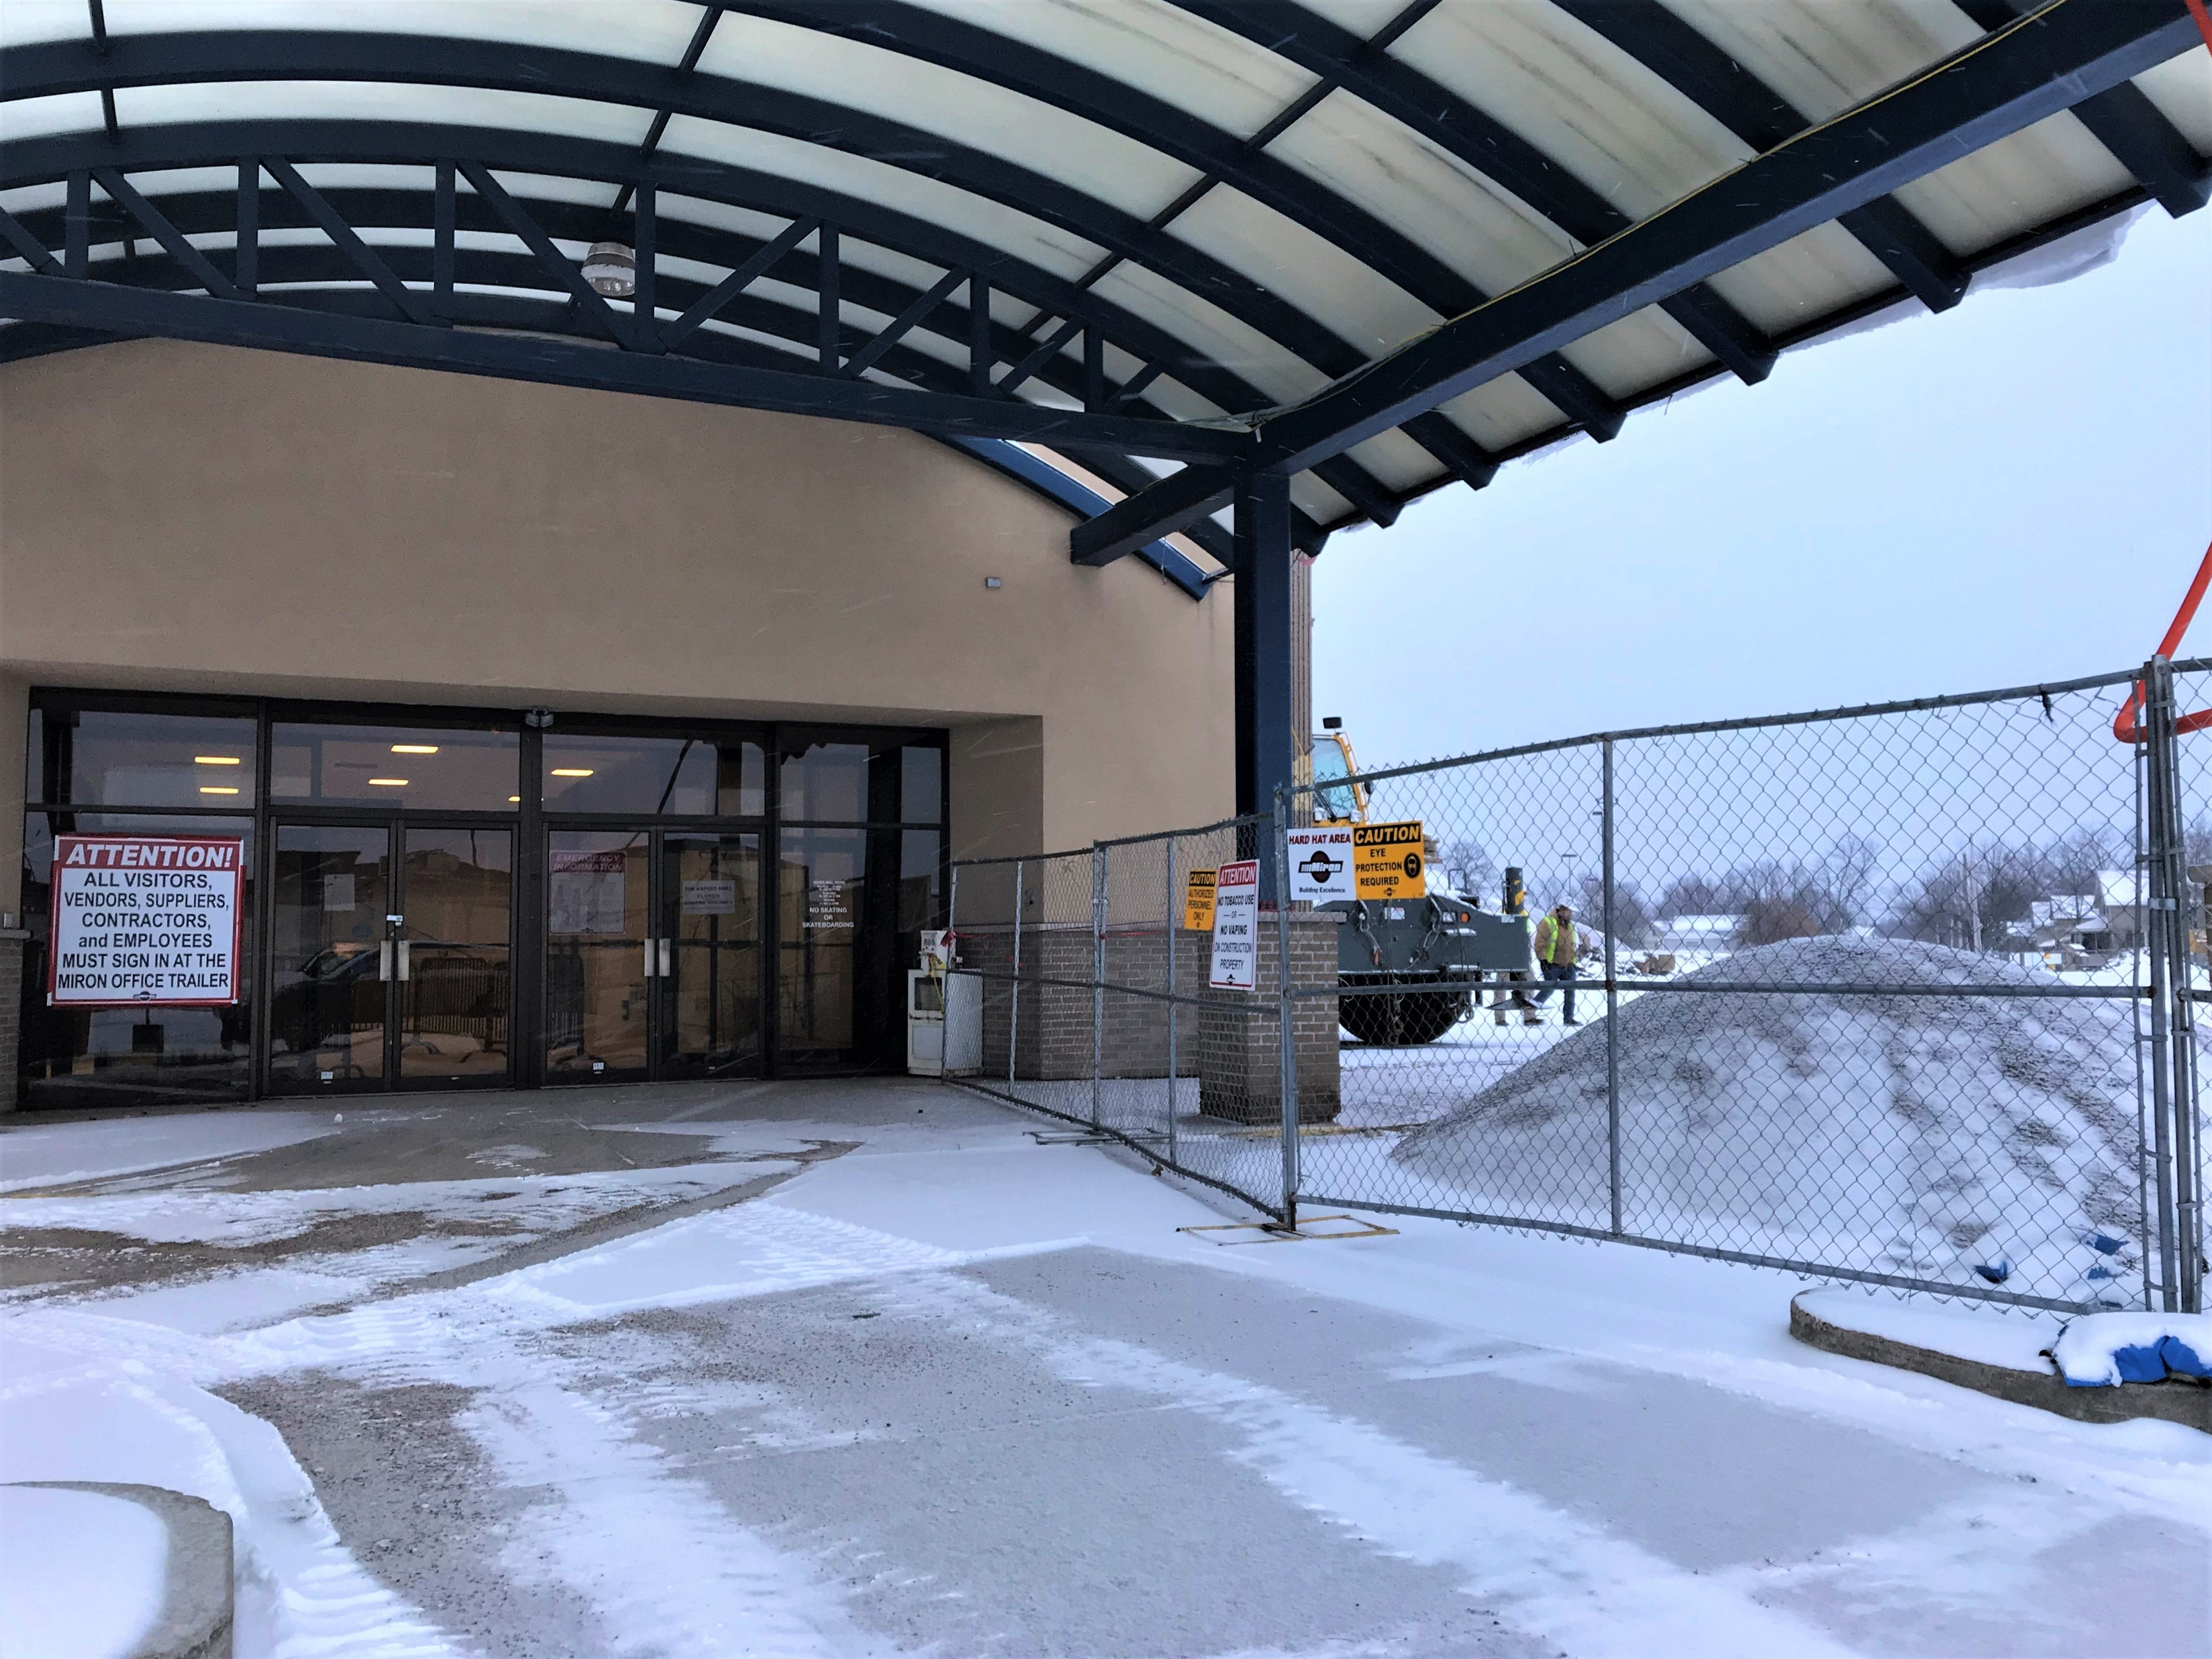 The entrance to the former Rapids Mall. Crews are preparing the site for the new YMCA and Boys & Girls Club. Photo taken Jan. 2, 2019.